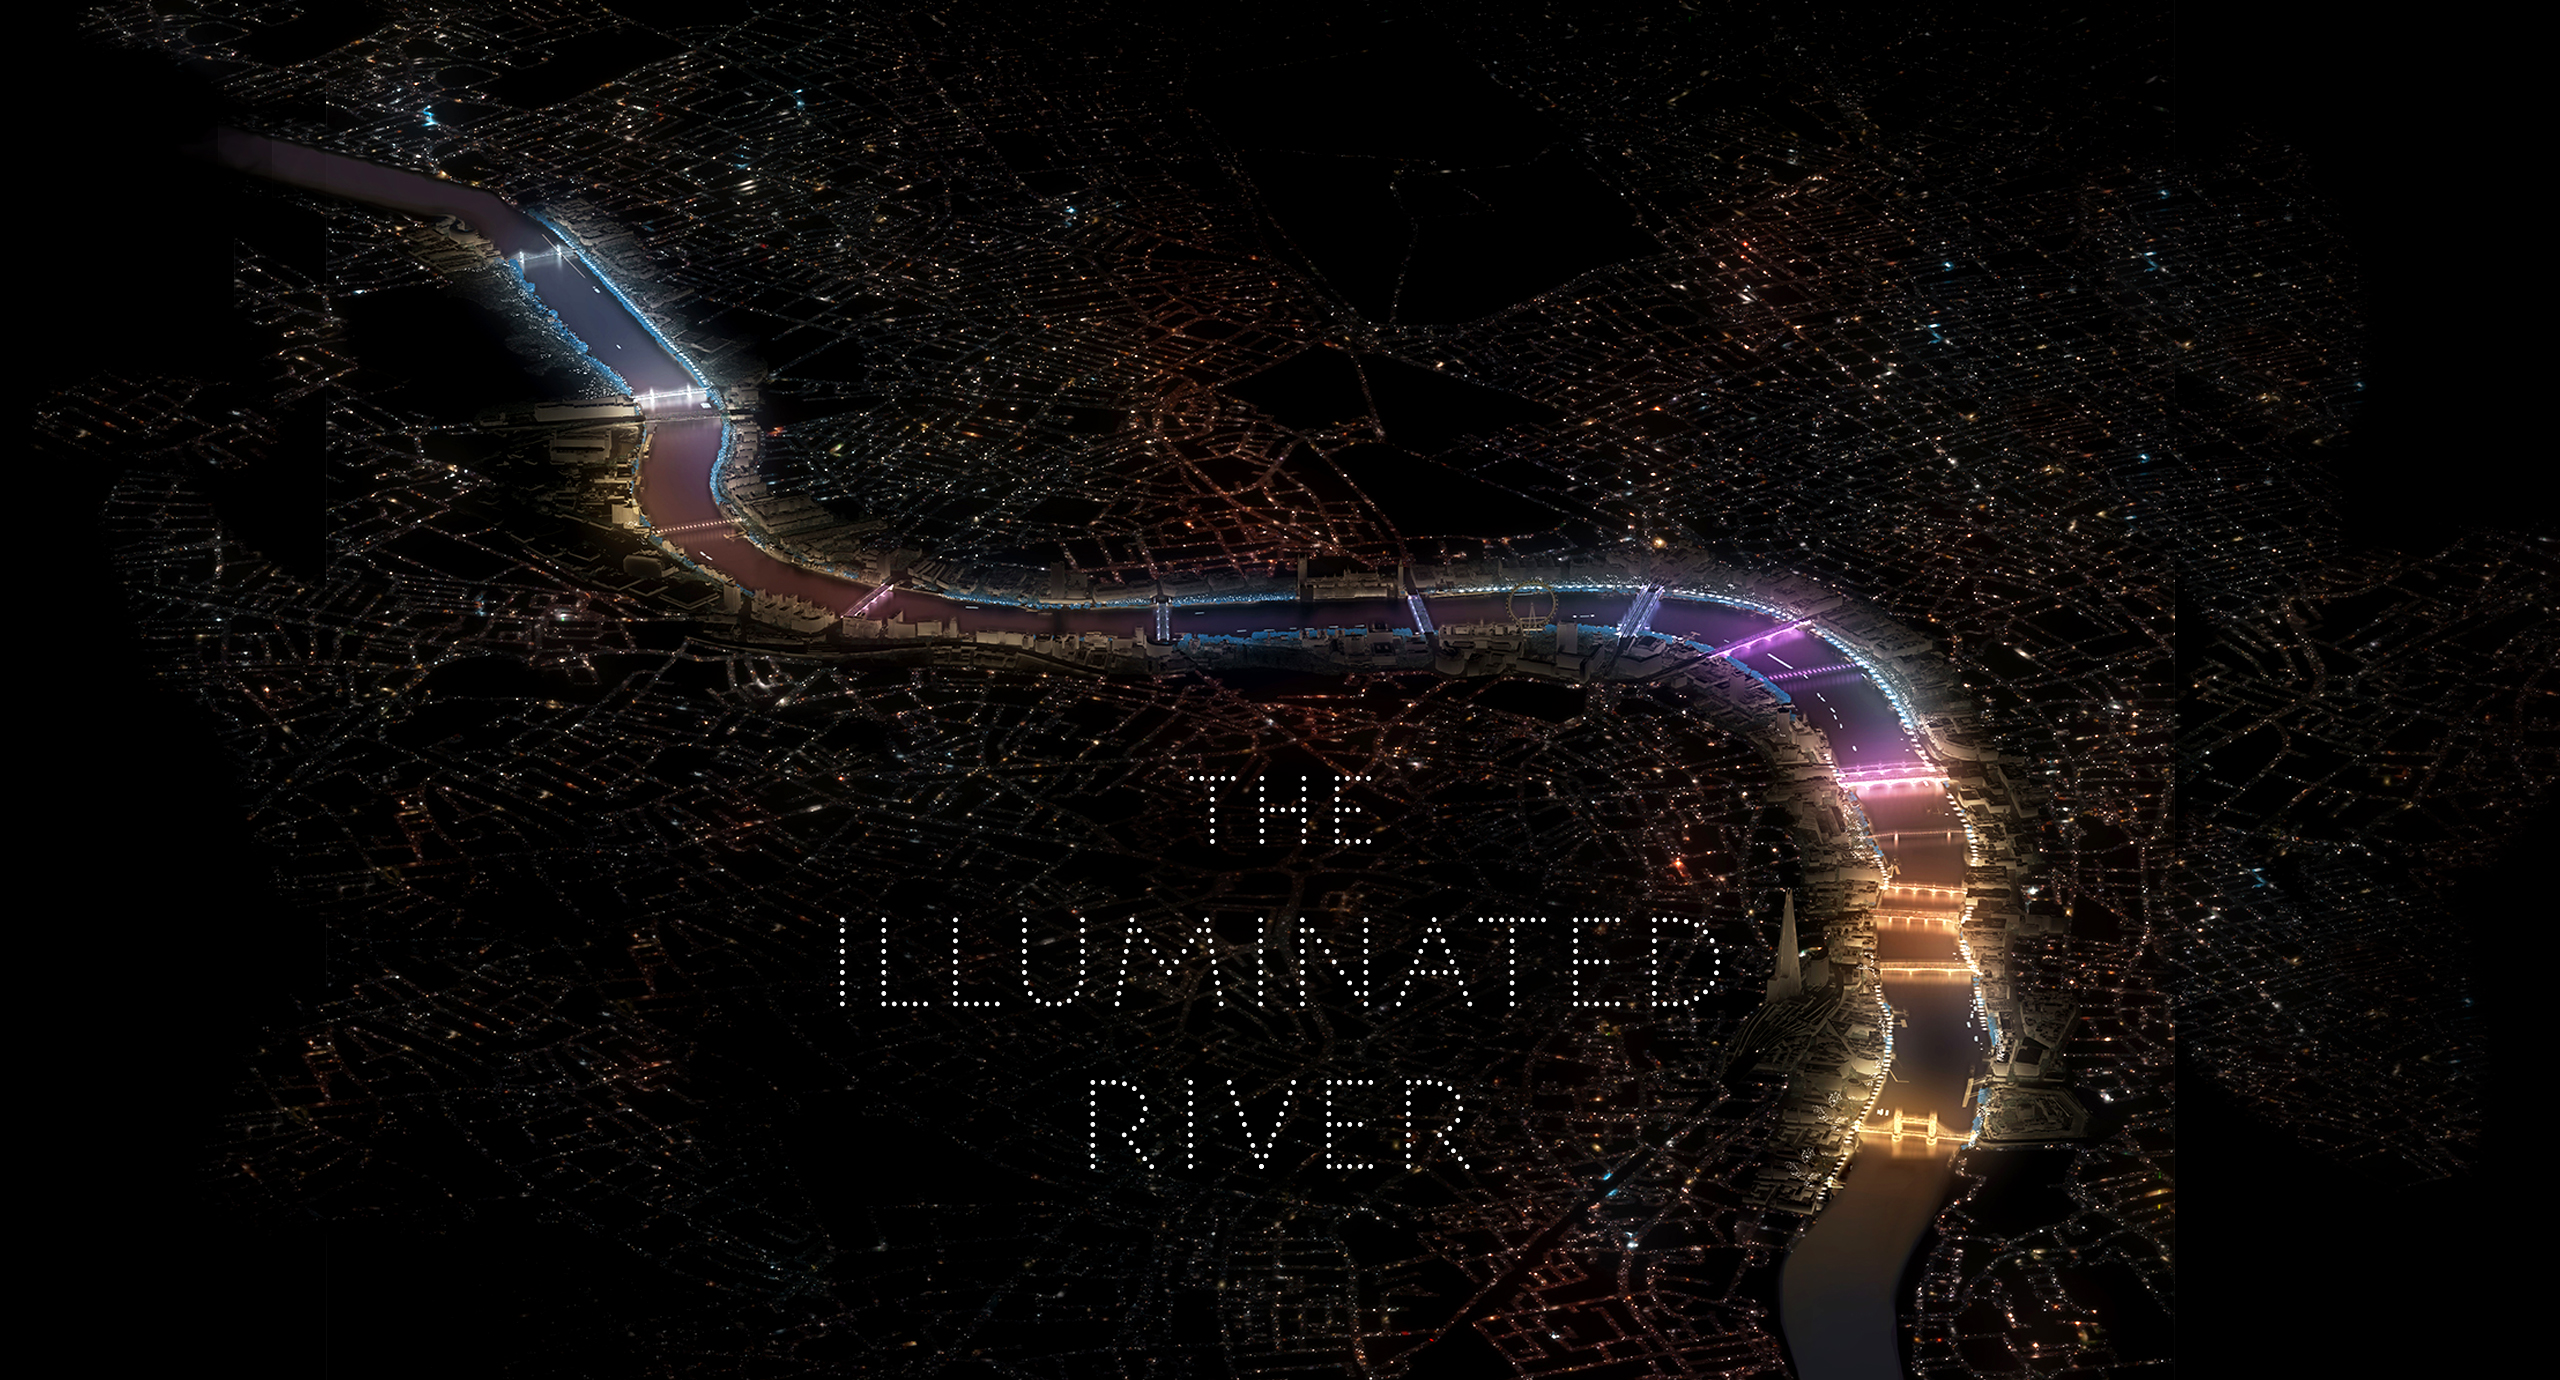 Baxter & Bailey — The Illuminated River